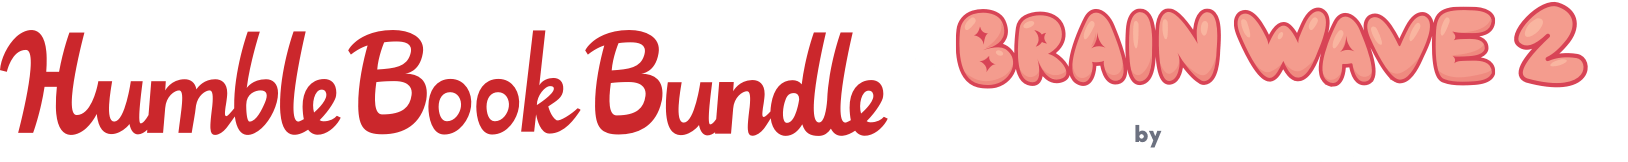 Humble Book Bundle: Brain Wave 2 by Open Road Media